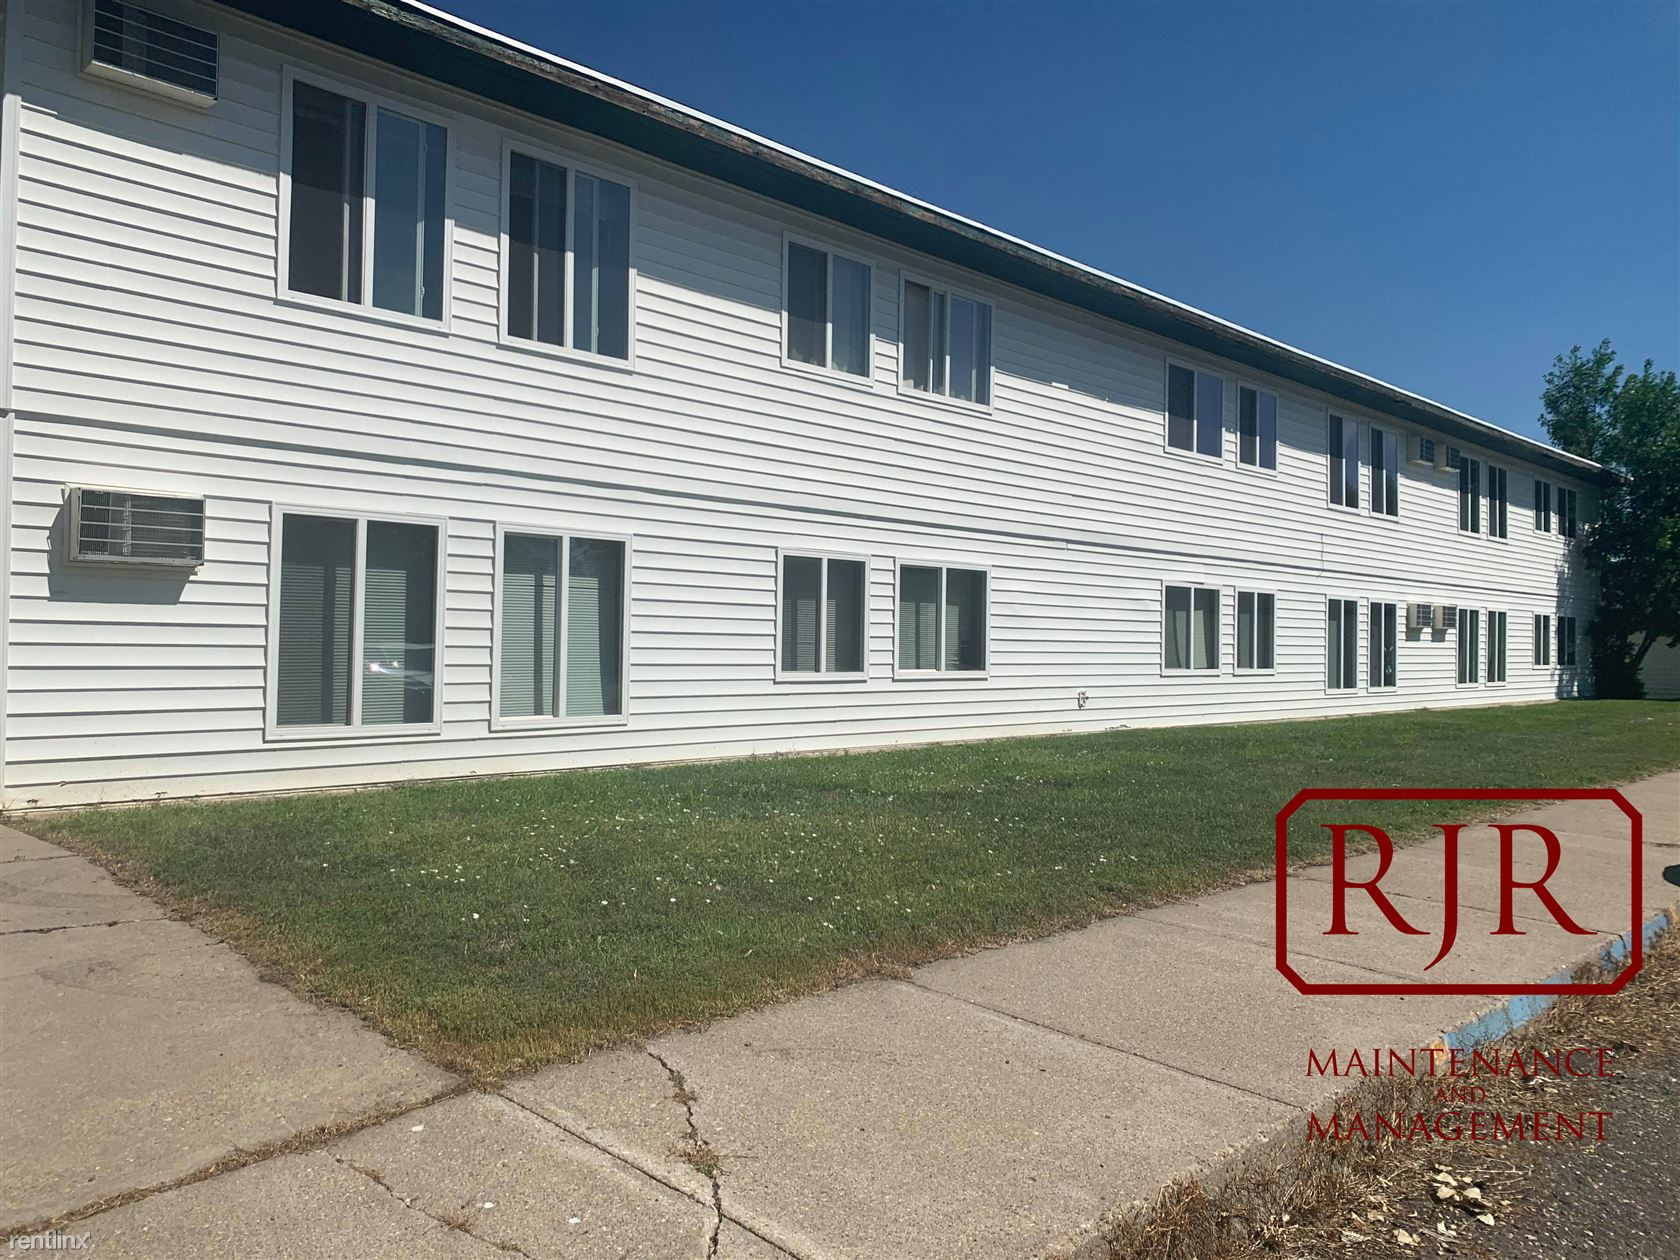 1200 Meadowbrook Dr, Washburn, ND - $575 USD/ month